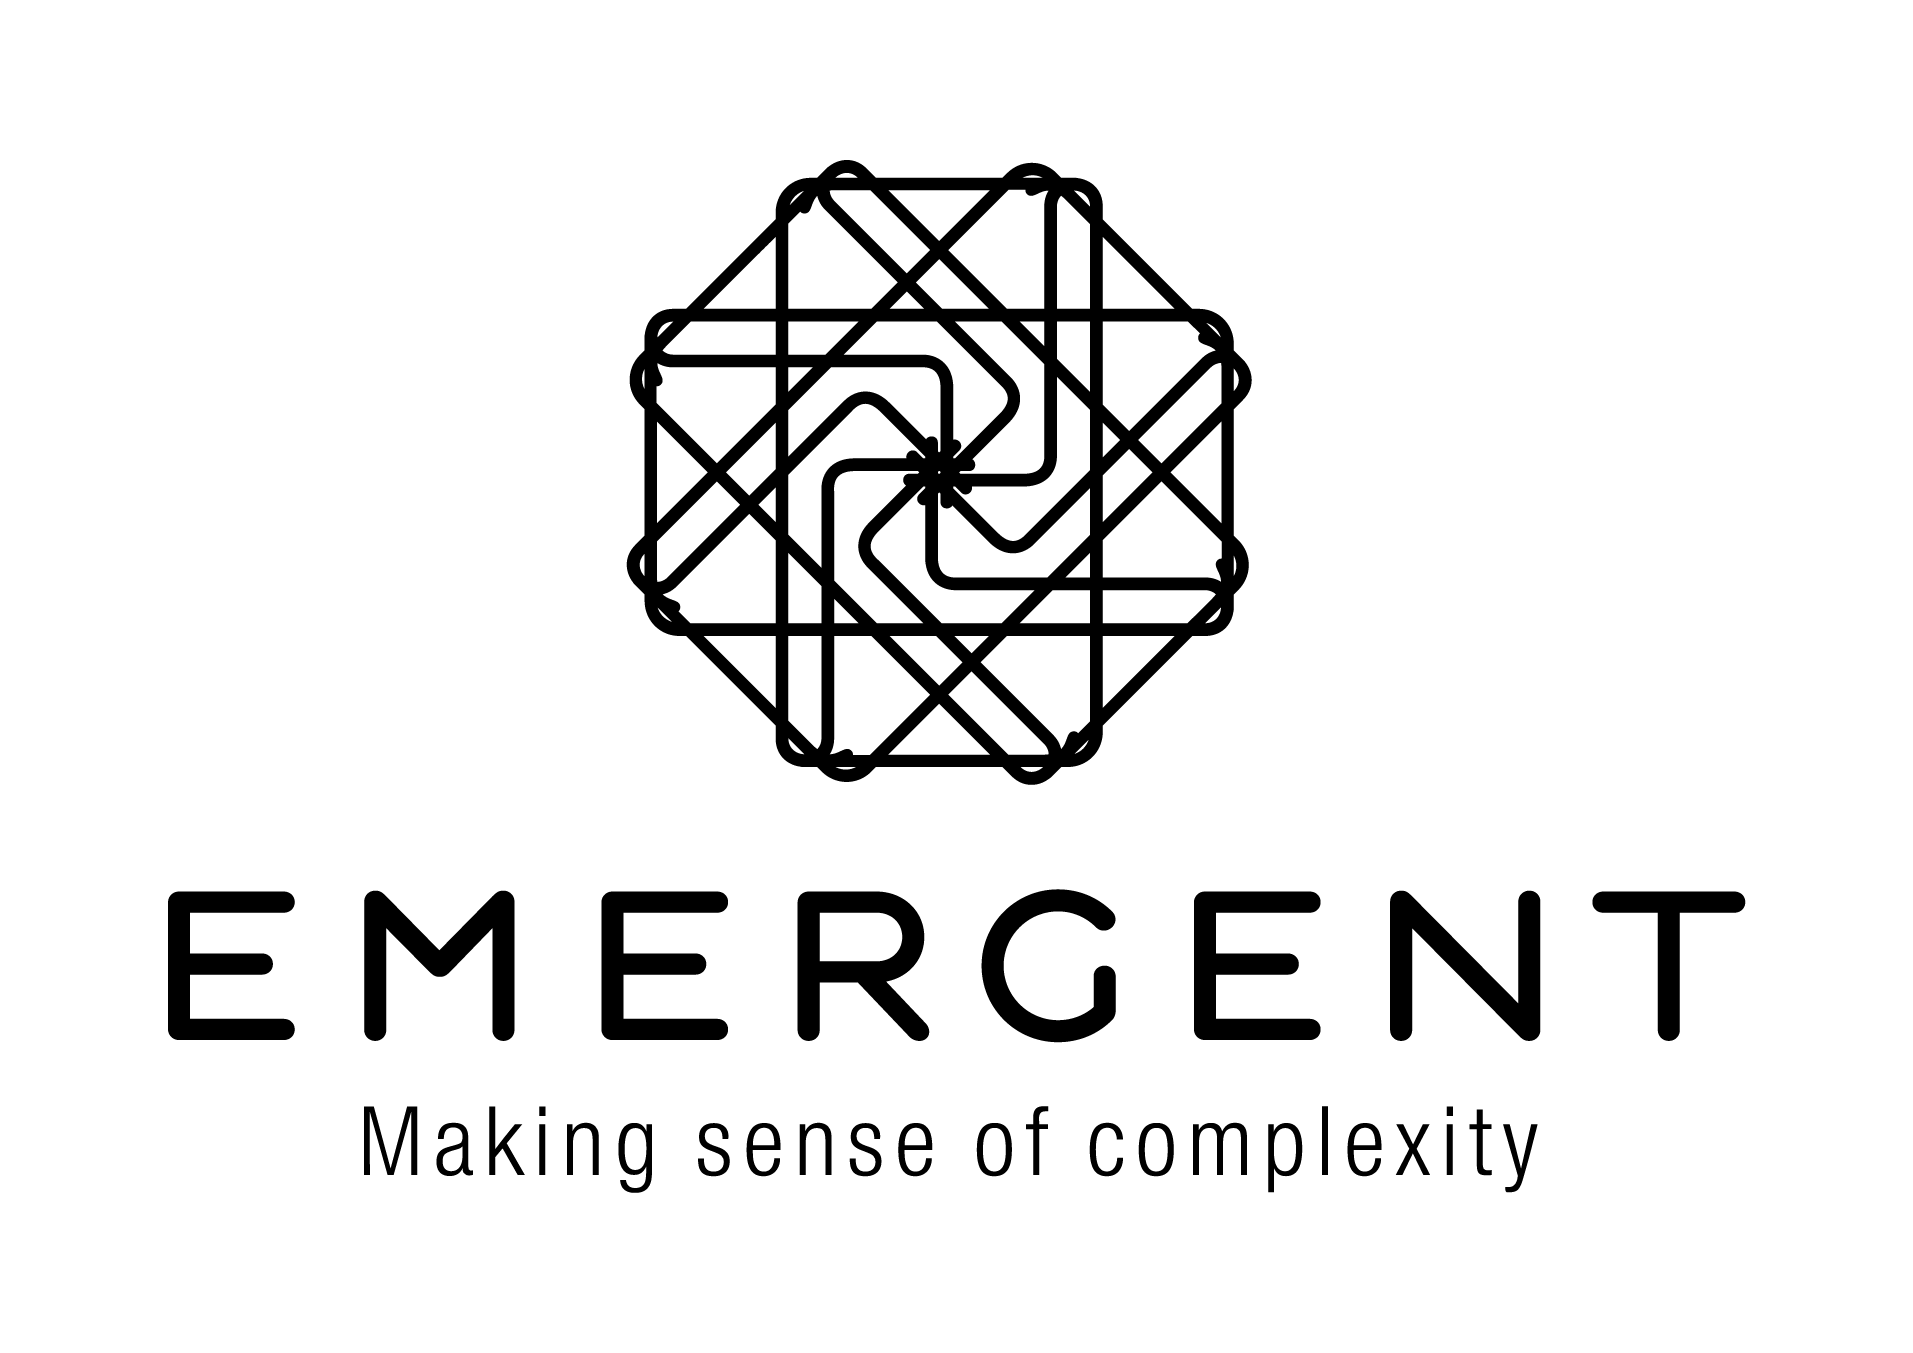 Emergent Systems logo full